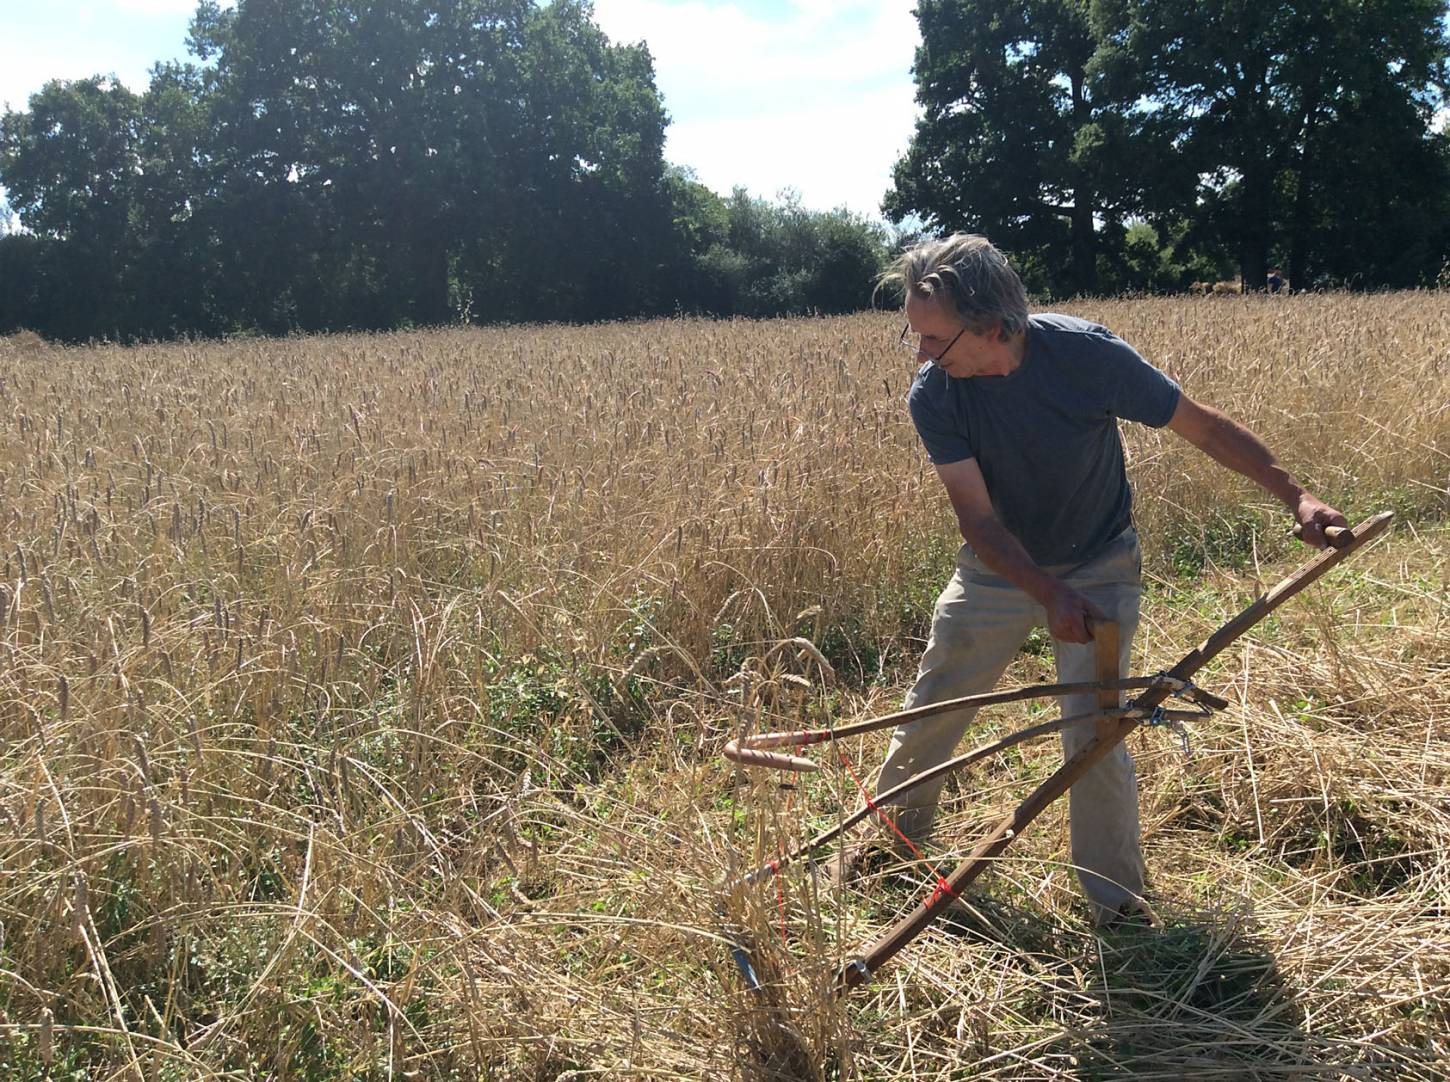 scythe action, our manual harvest at Lodge Farm, pics = <a href='http://www.annbodkin.co.uk/' target='_blank'>Ann Bodkin</a> - 1:58pm&nbsp;13<sup>th</sup>&nbsp;Aug.&nbsp;'17